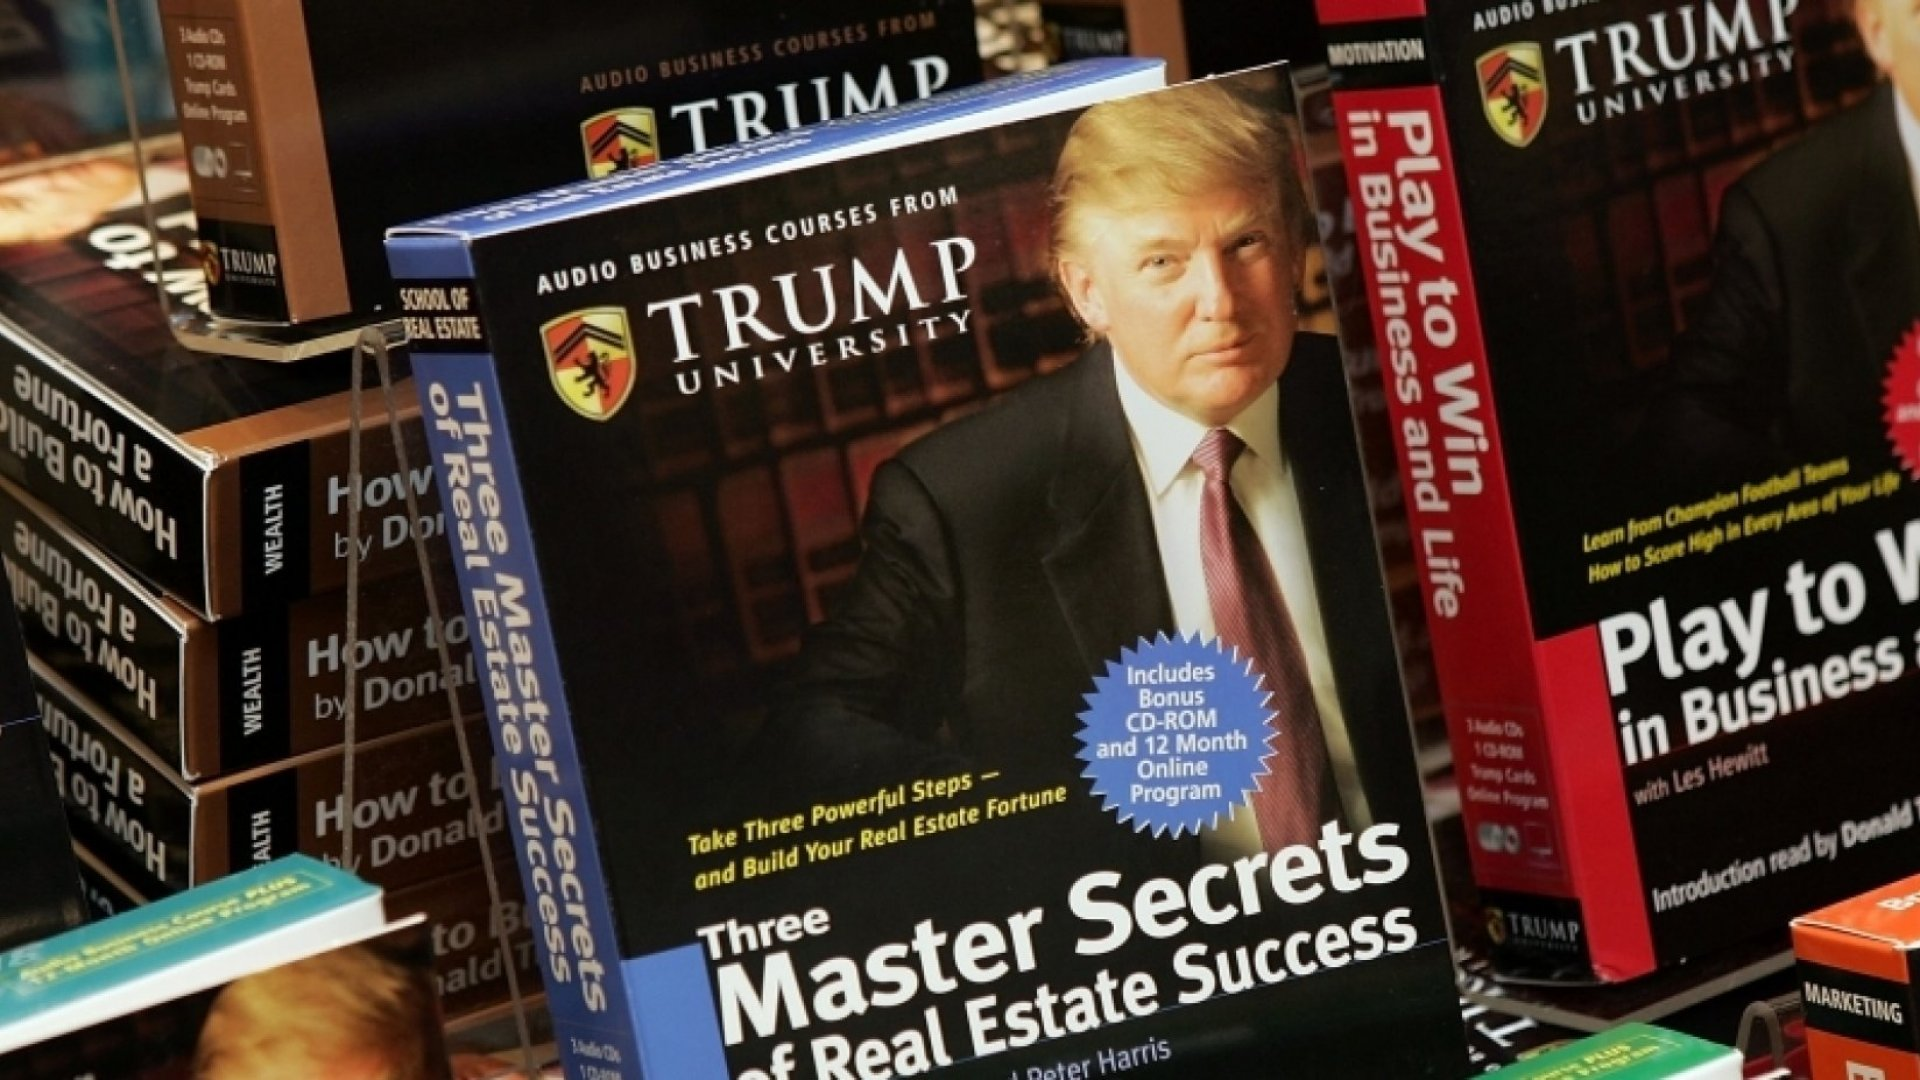 5 Power Phrases From the Trump University Playbook